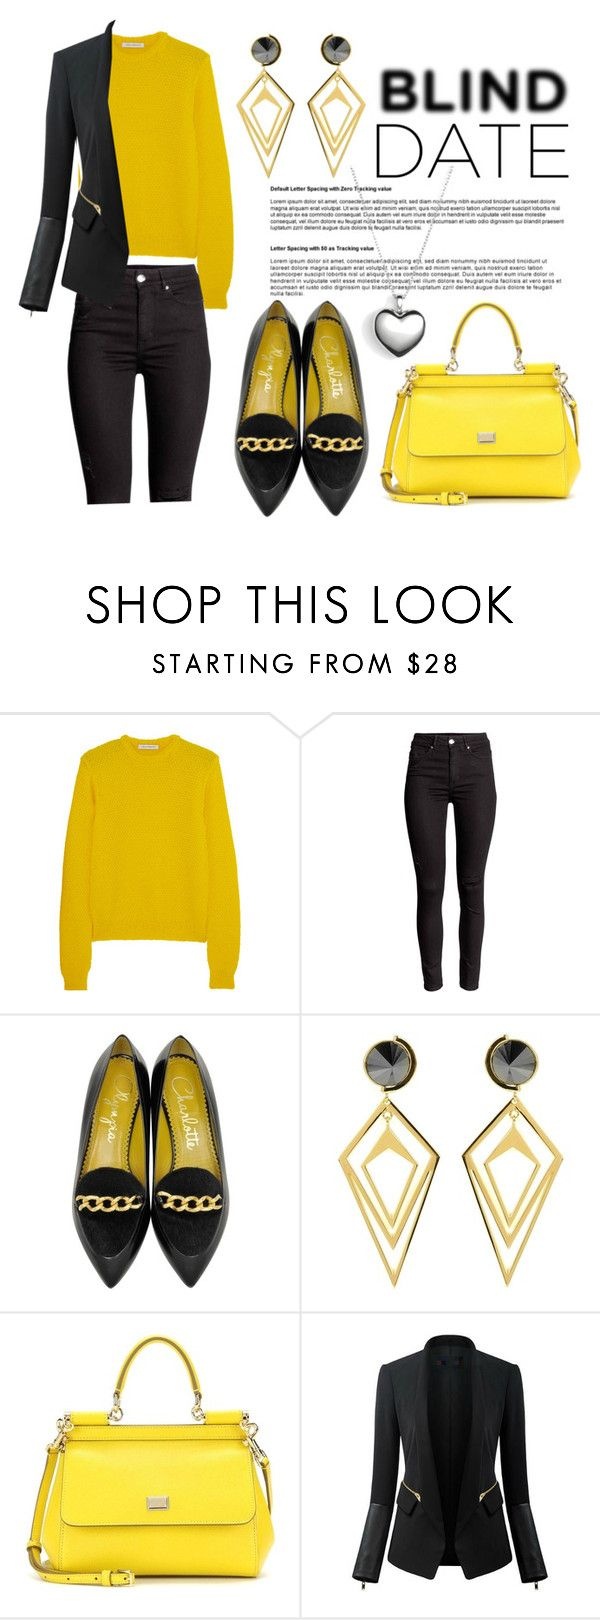 """""""Blind Date"""" by laura-wild-1 ❤ liked on Polyvore featuring J.W. Anderson, Charlotte Olympia, Sarah Magid, Dolce&Gabbana, Chicsense and Pandora"""